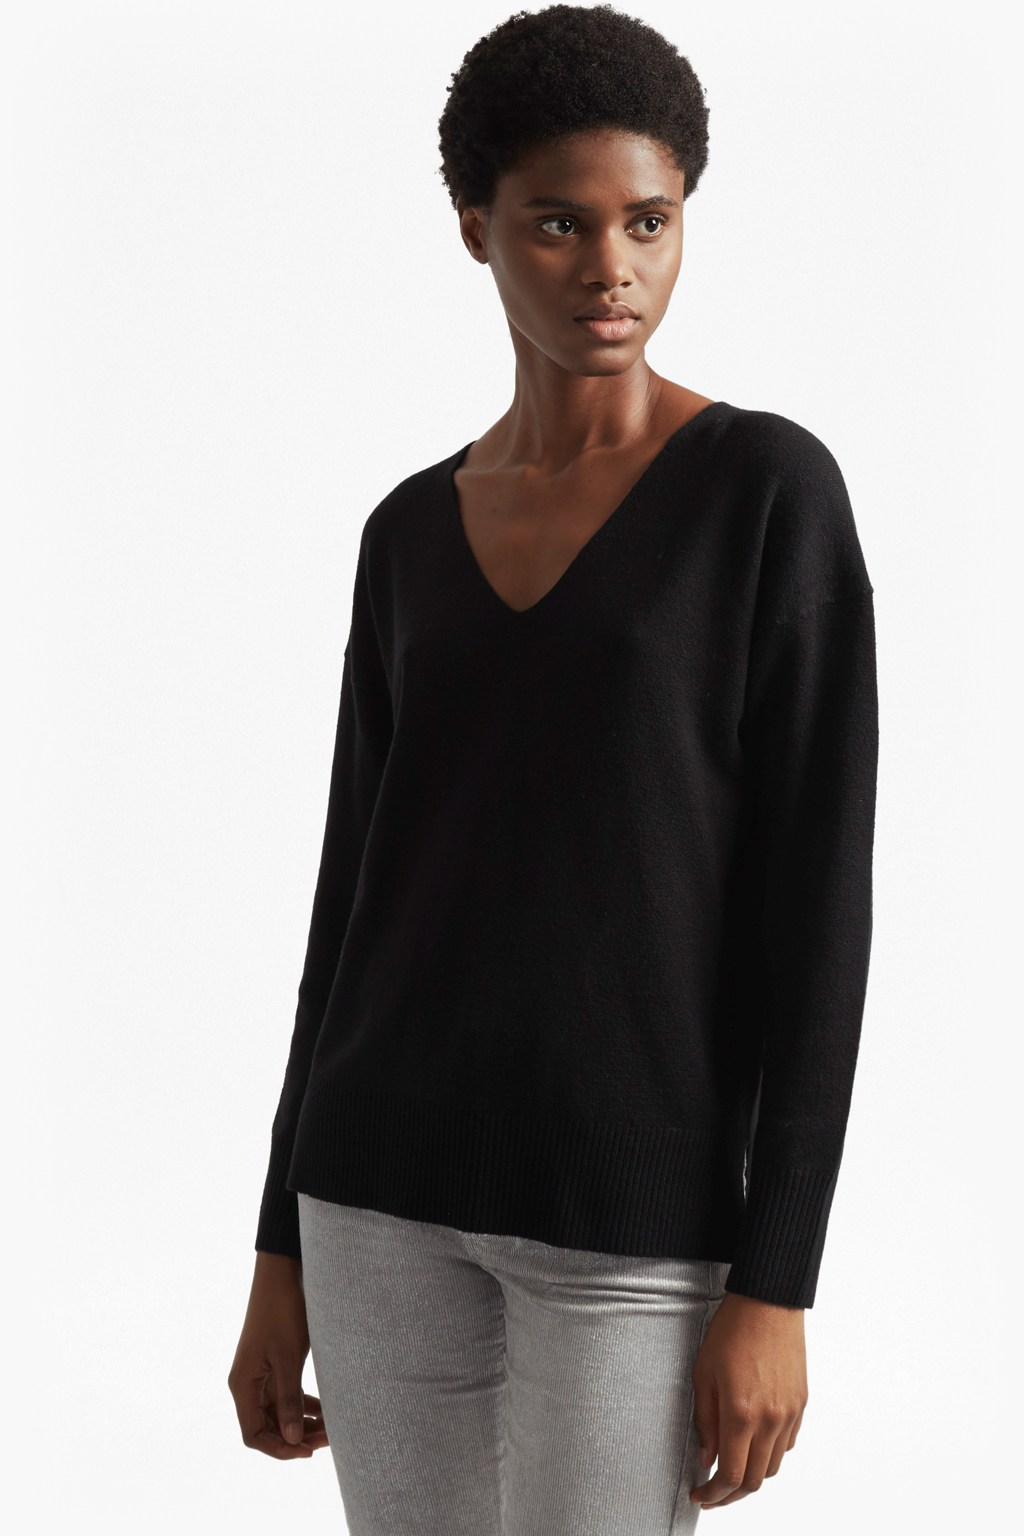 6463fa69131bb9 ... French Connection Della Vhari Long Sleeved V Neck Jumper clearance  prices 8be0b 3d725 ...